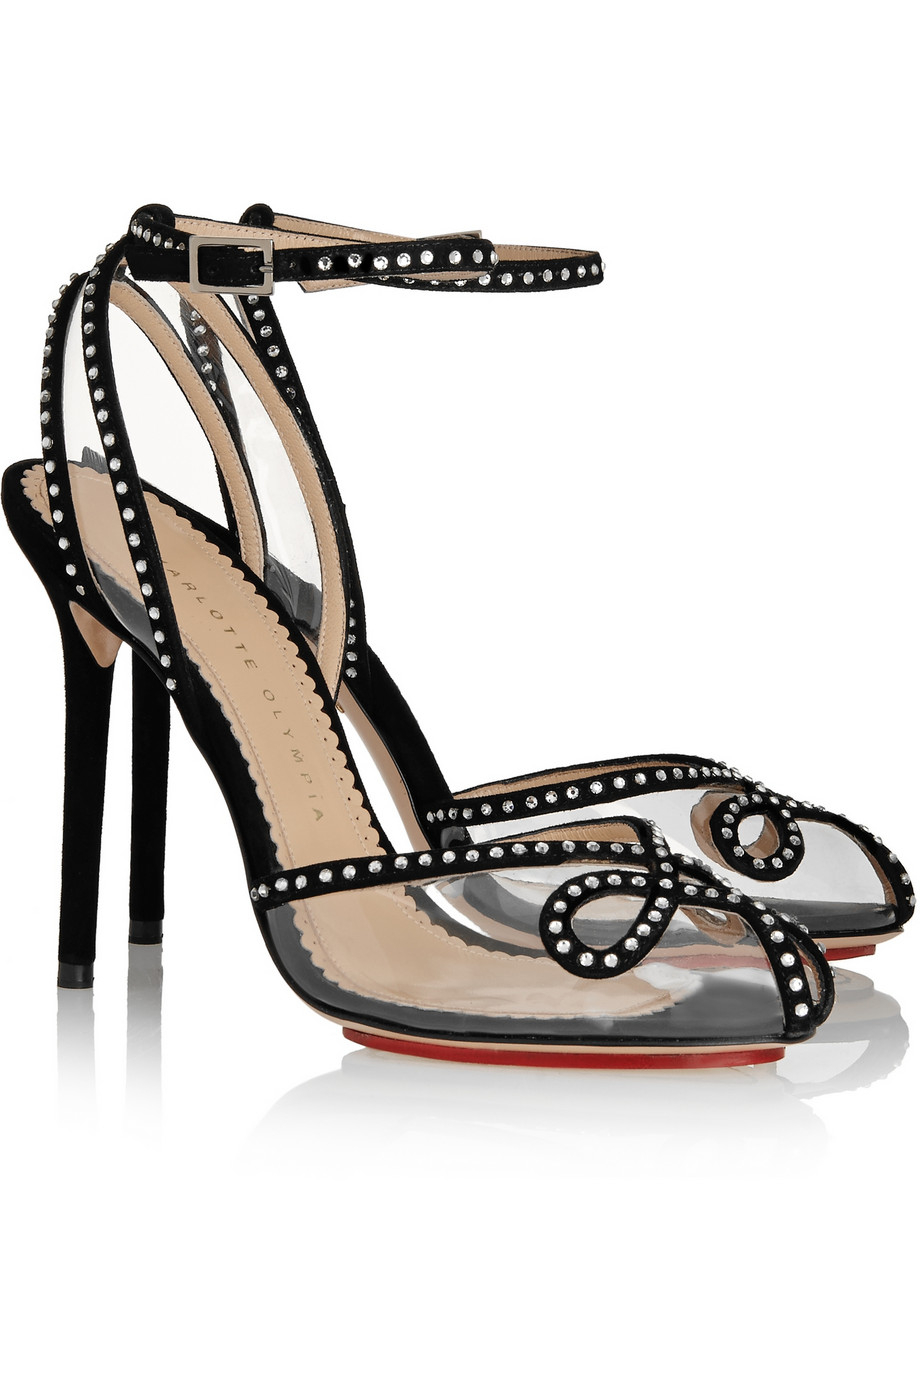 Charlotte Olympia Black Crystal Cage Sandals wBNaQp